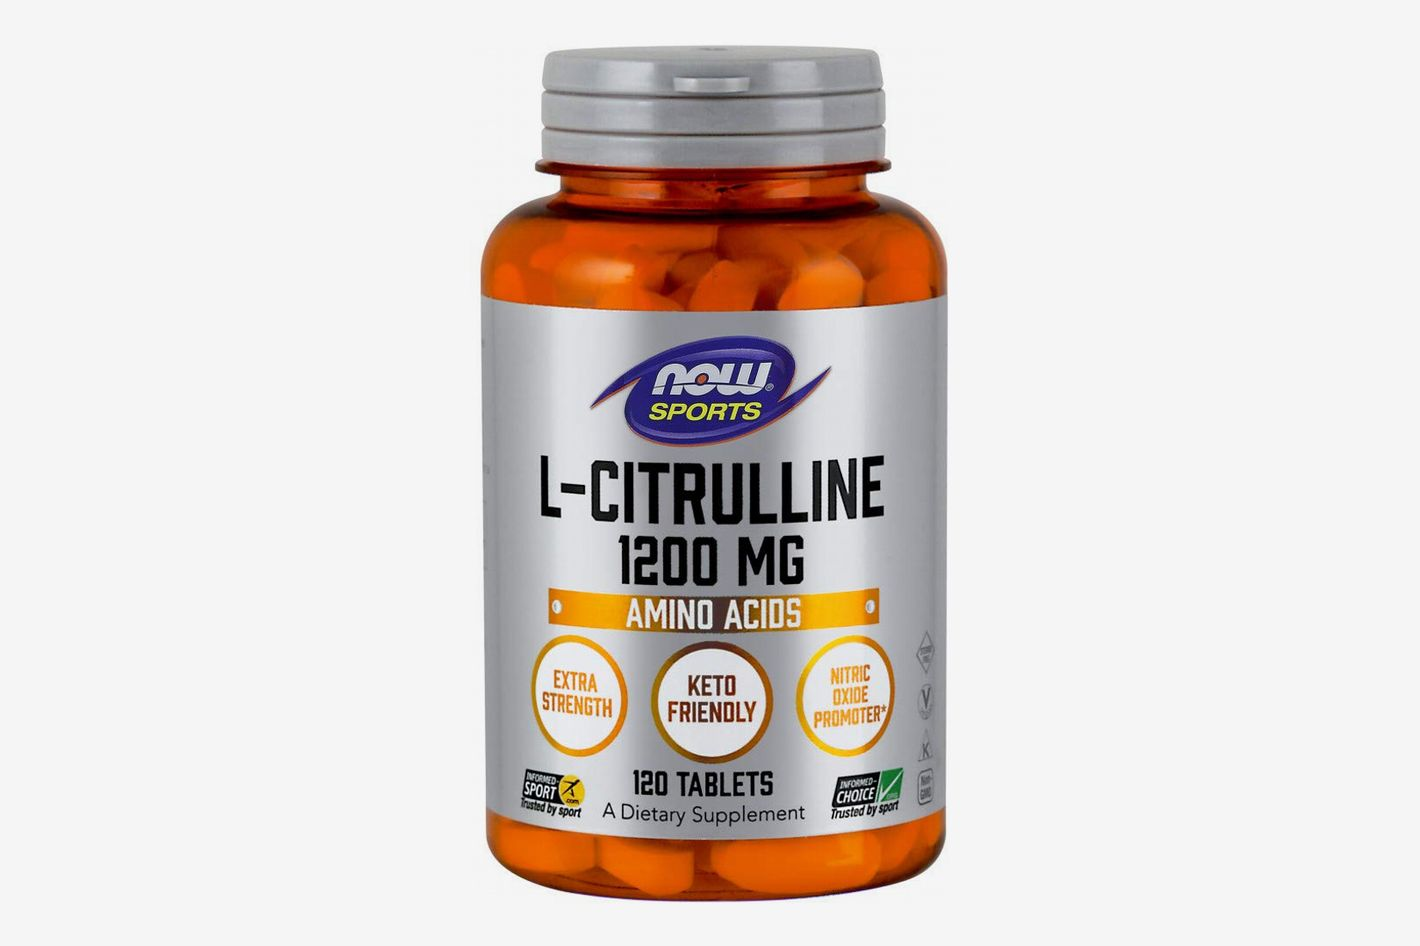 Now Sports L-Citrulline 1200 mg Extra Strength